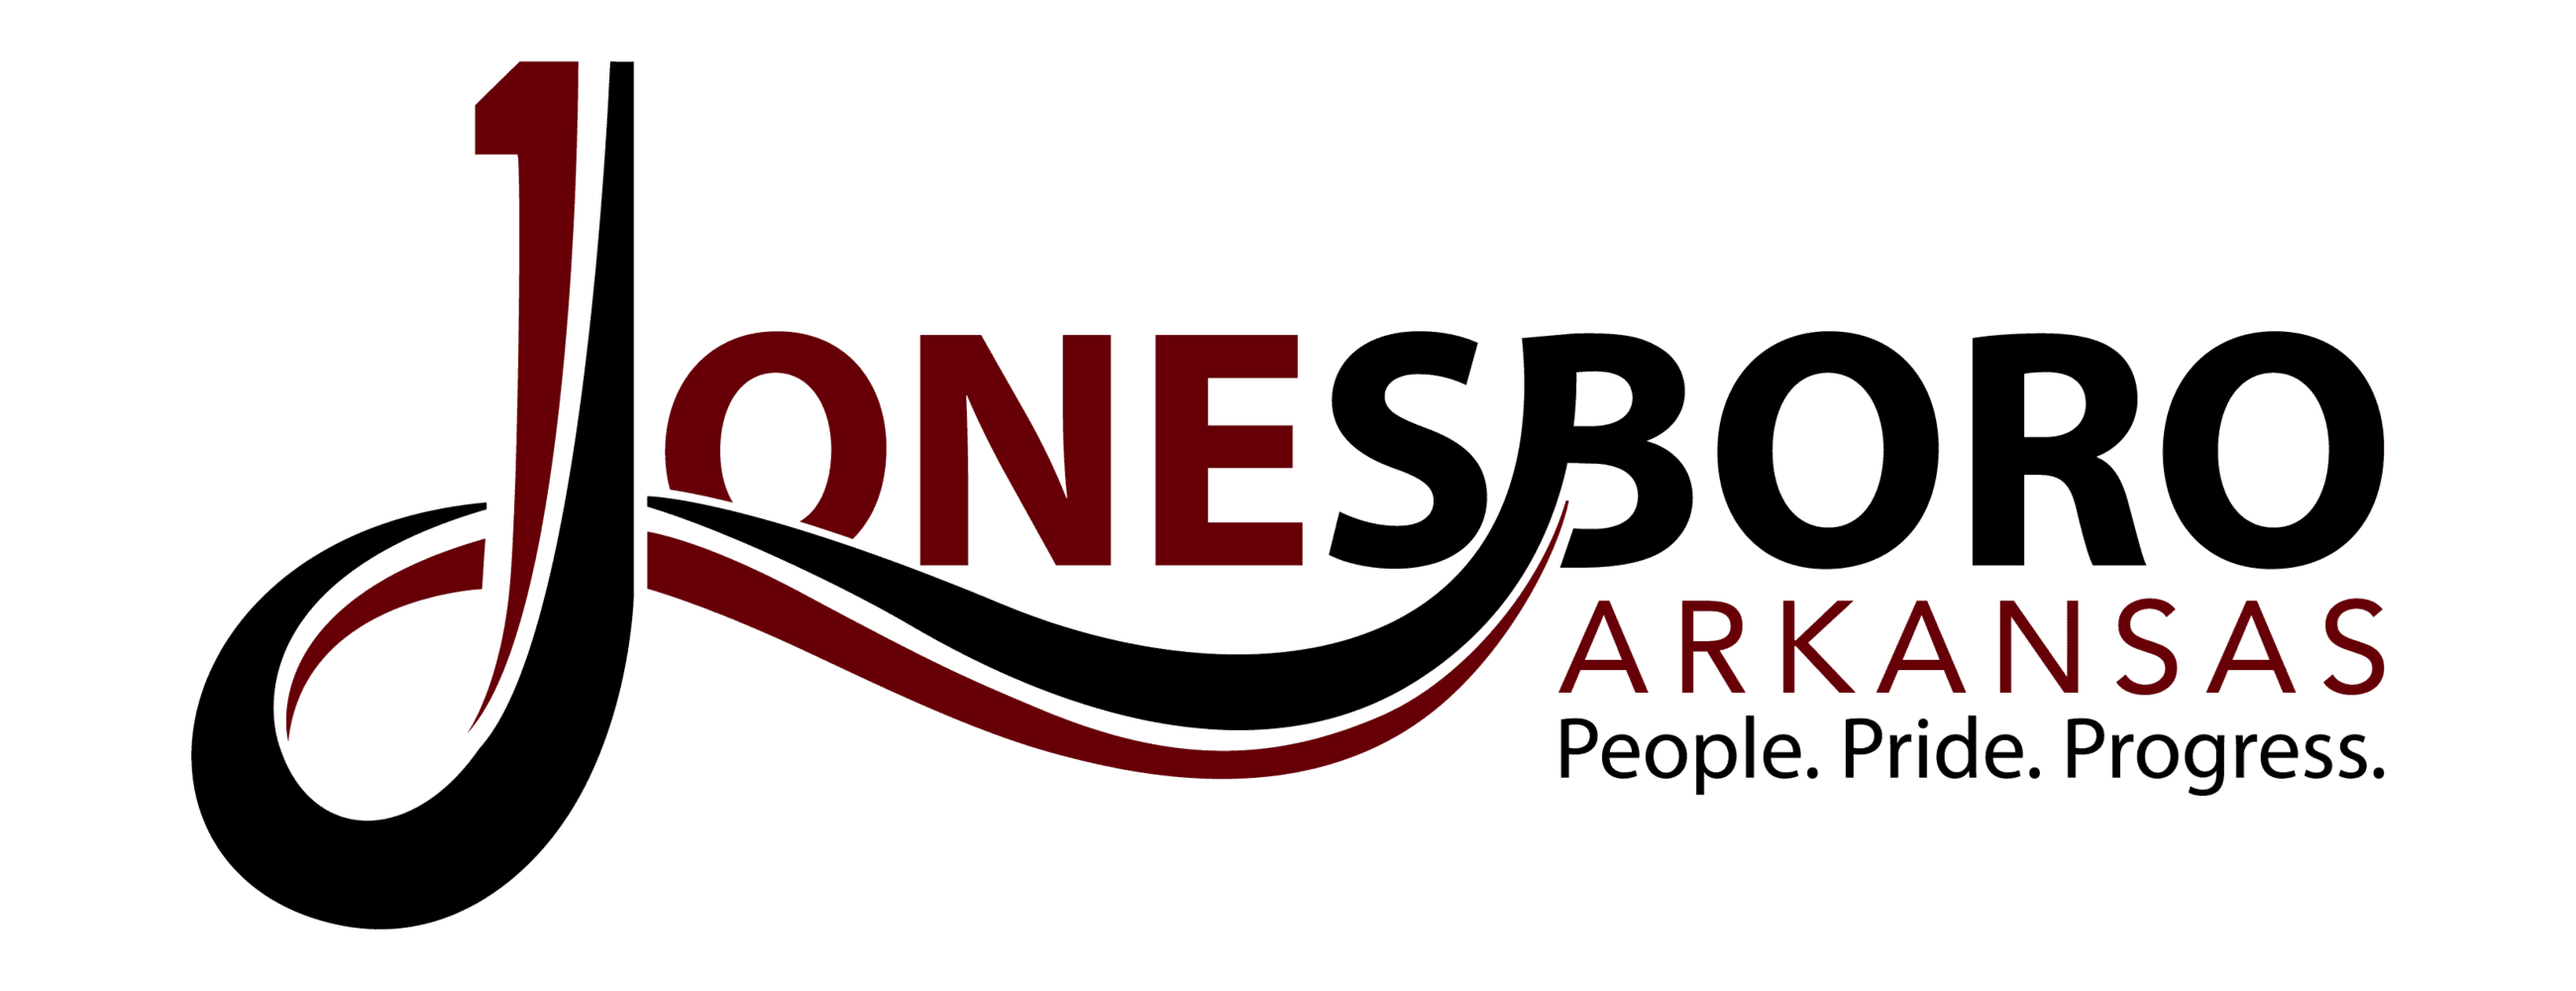 2019 jonesboro logo in color; black and red logo